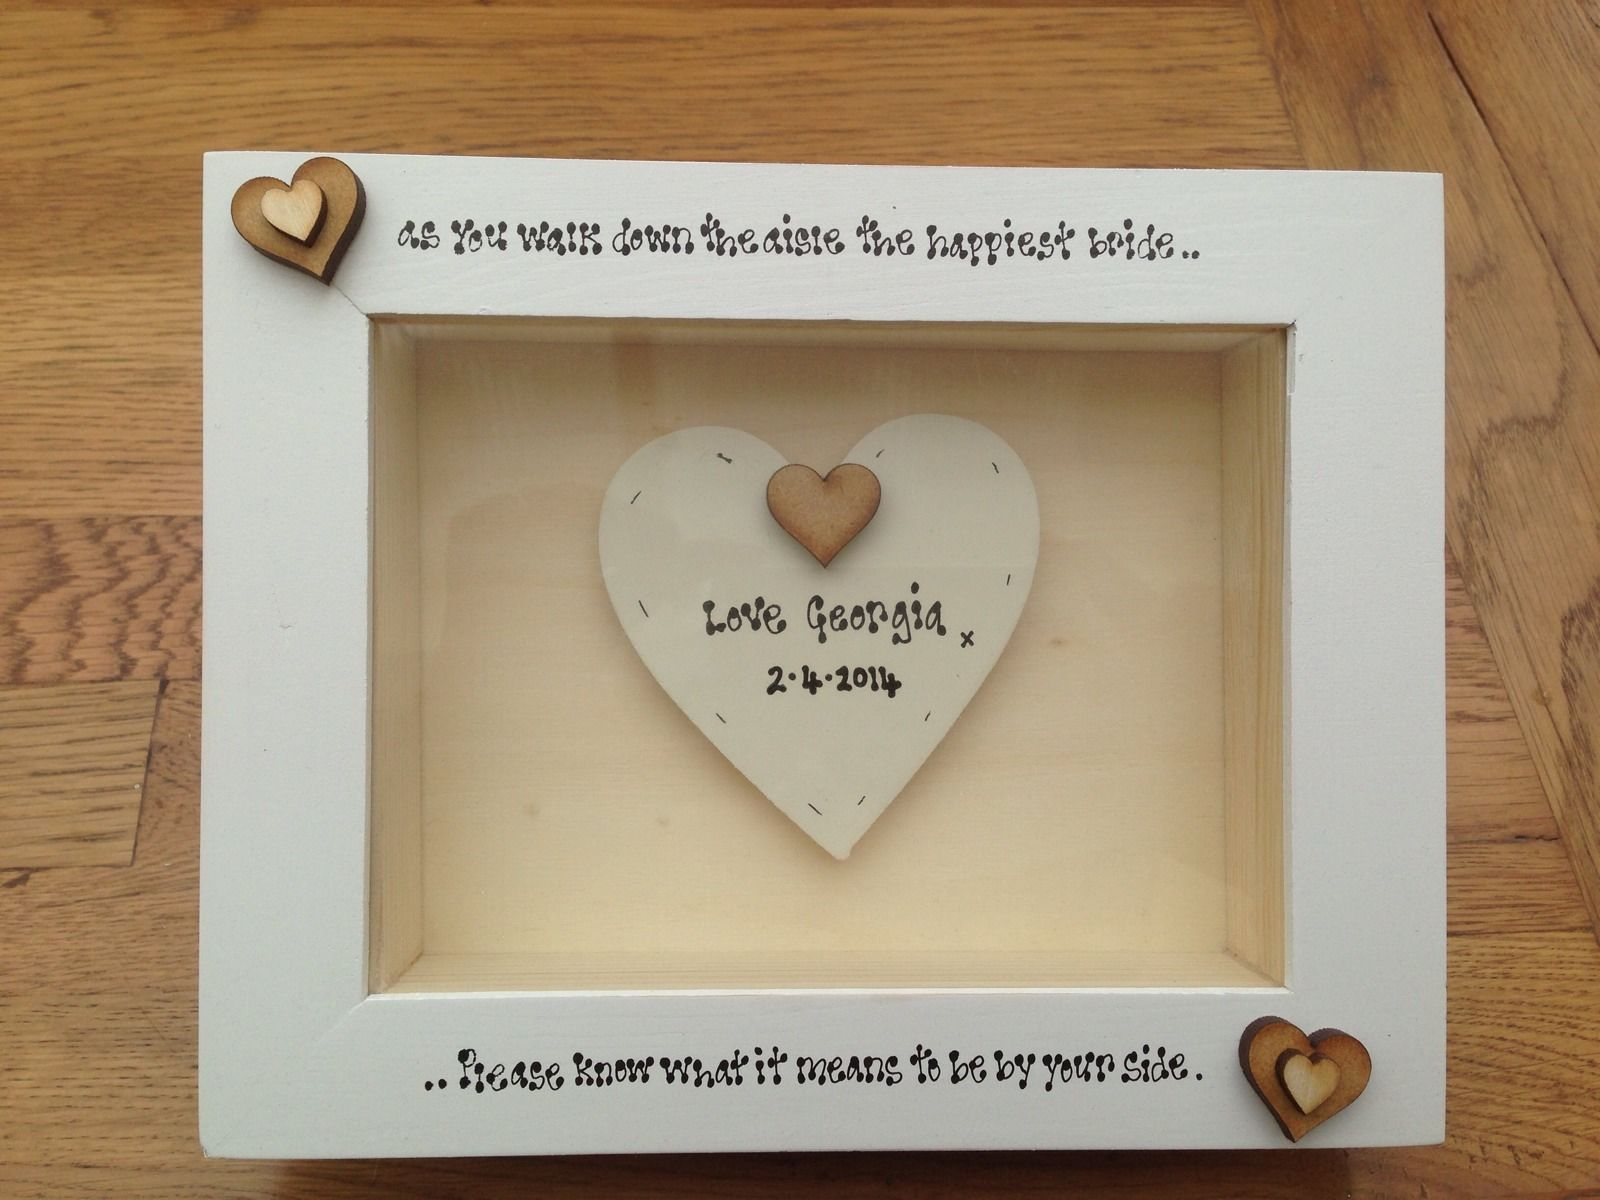 Wedding Keepsake Gifts For The Bride : ... Chic Box Frame Gift For Bride On Her Wedding From Bridesmaid